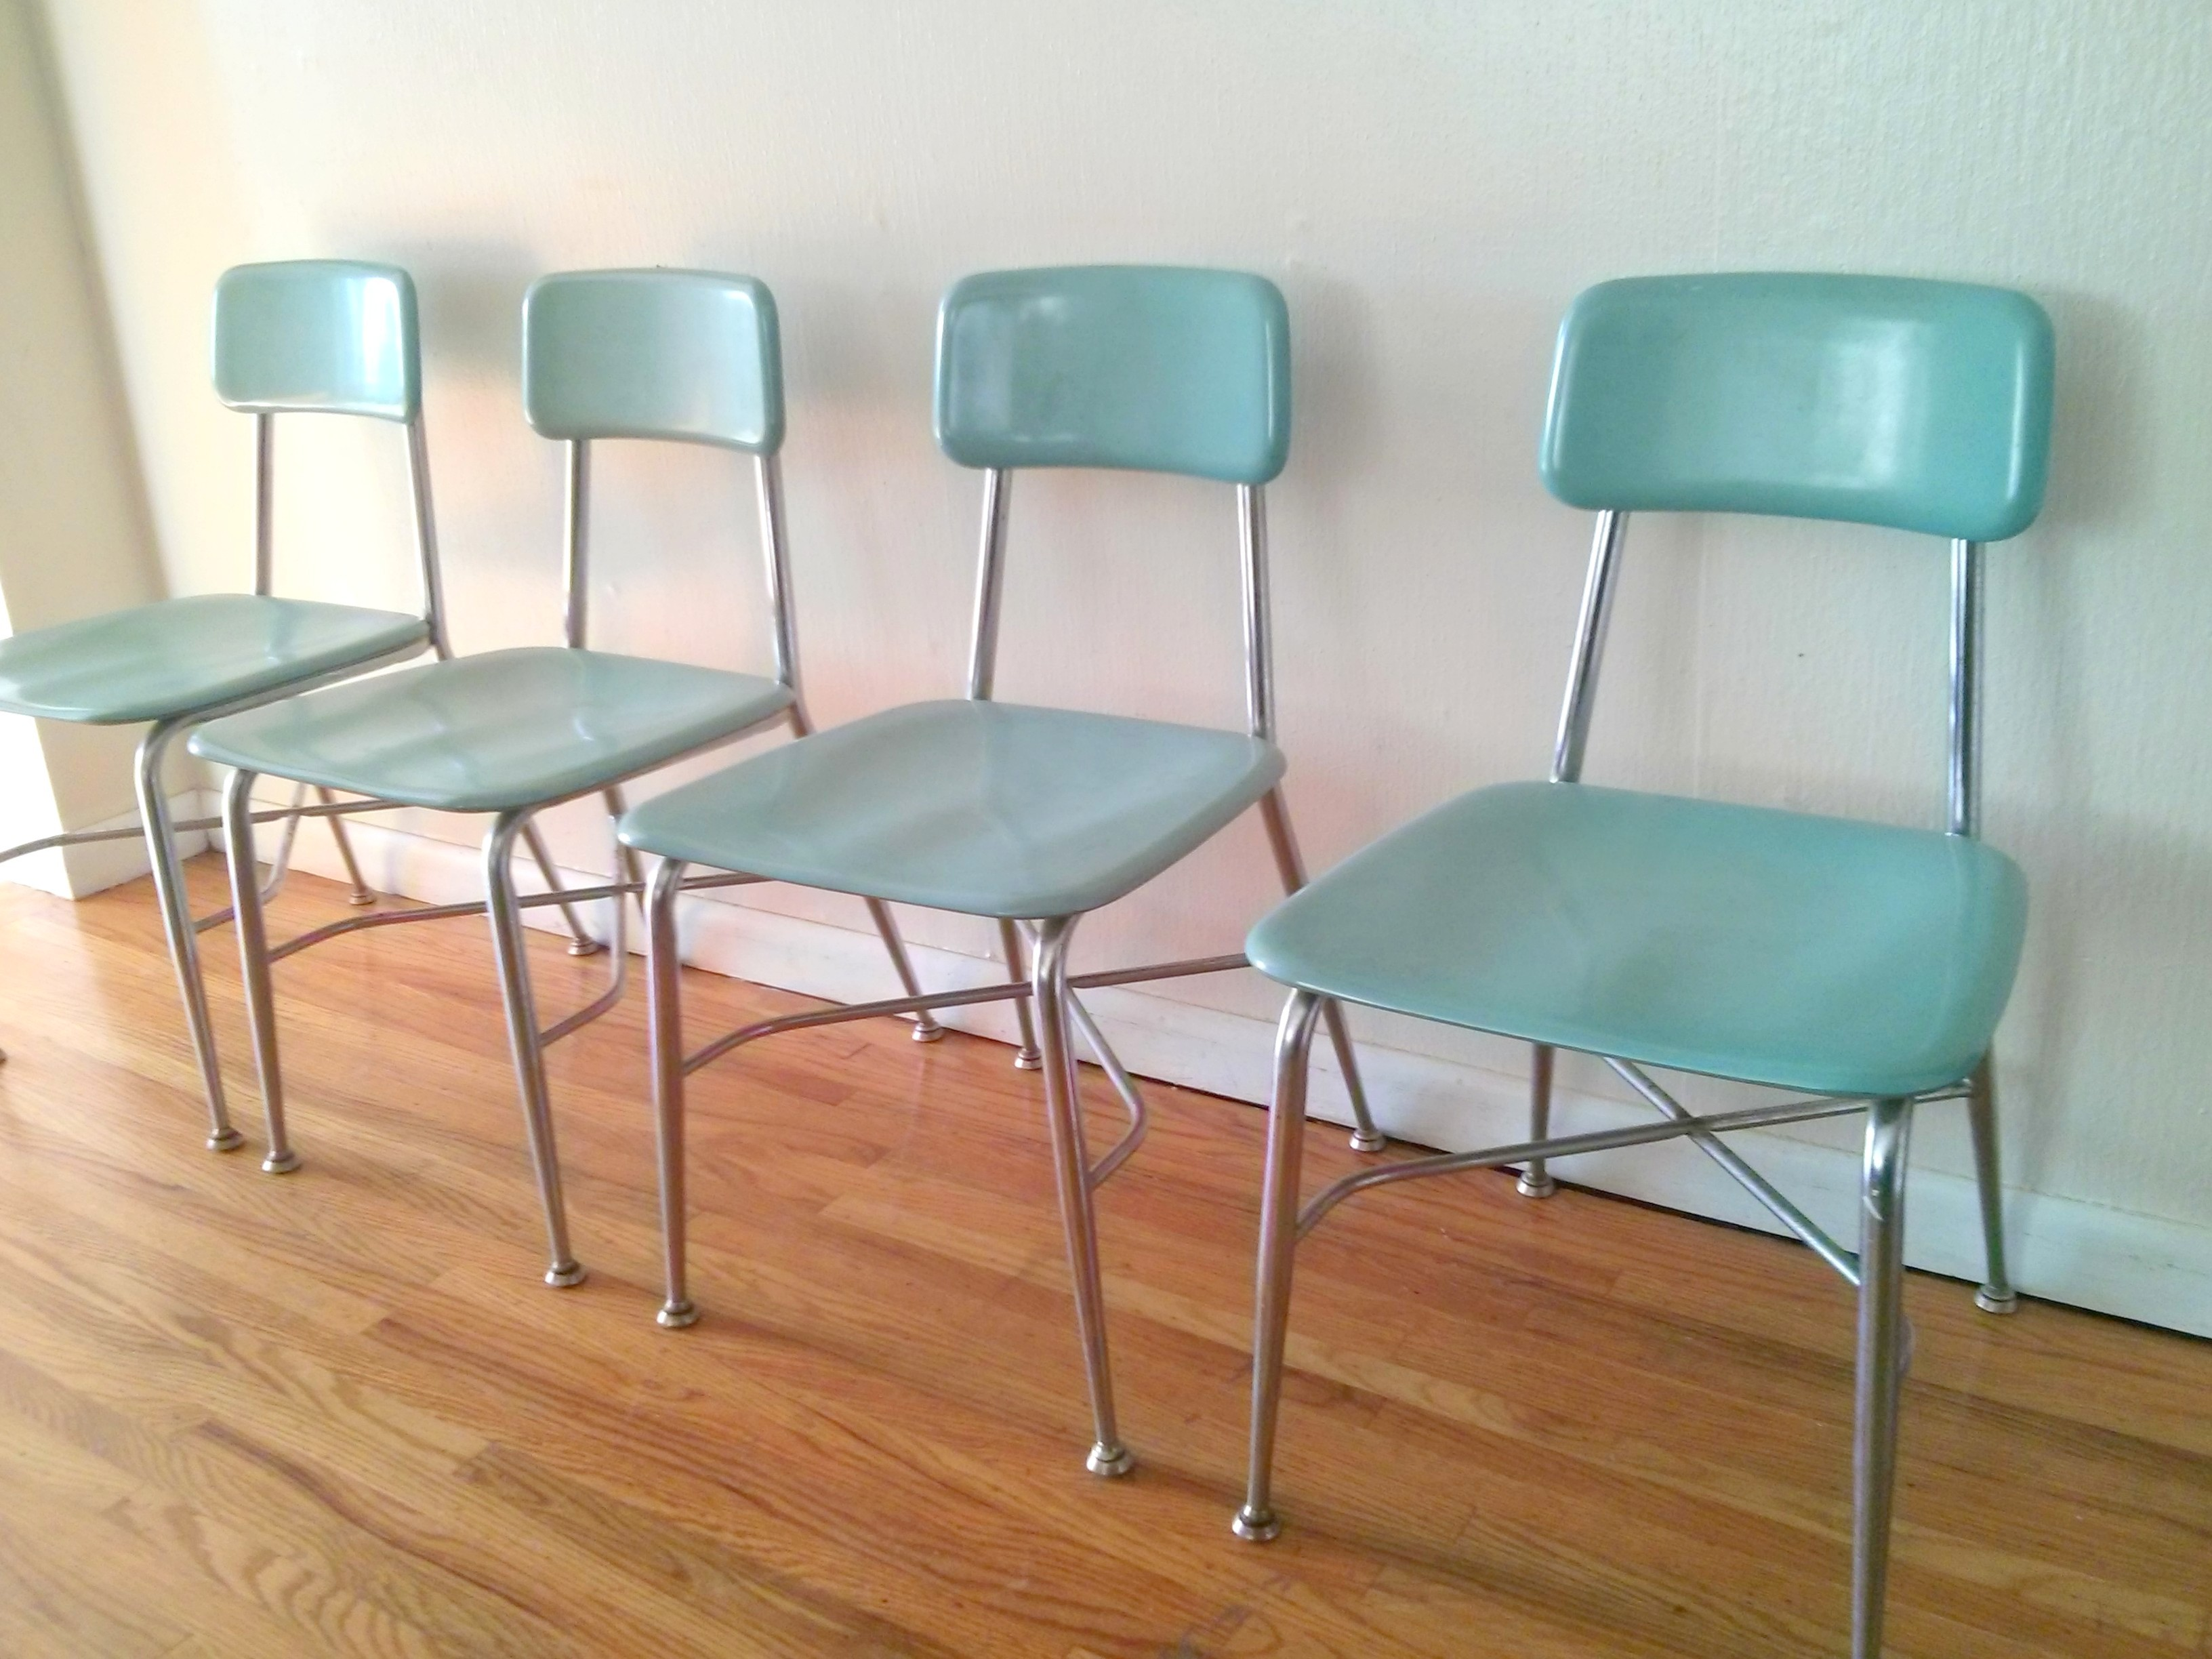 heywood wakefield vintage furniture Heywood Wakefield Bakelite Chairs | Picked Vintage heywood wakefield vintage furniture